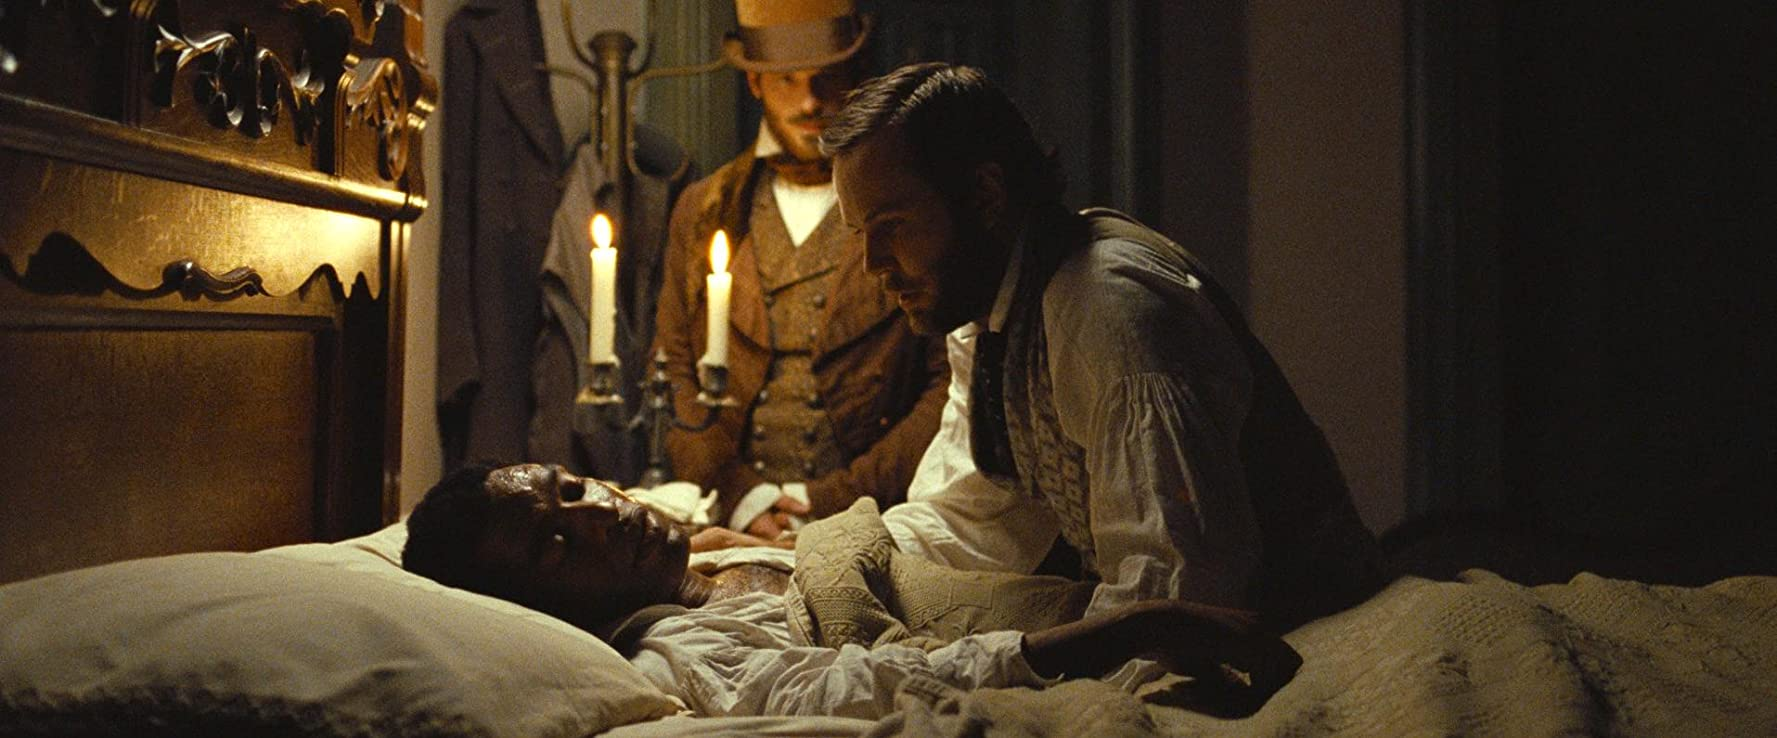 Chiwetel Ejiofor, Taran Killam, and Scoot McNairy in 12 Years a Slave (2013)